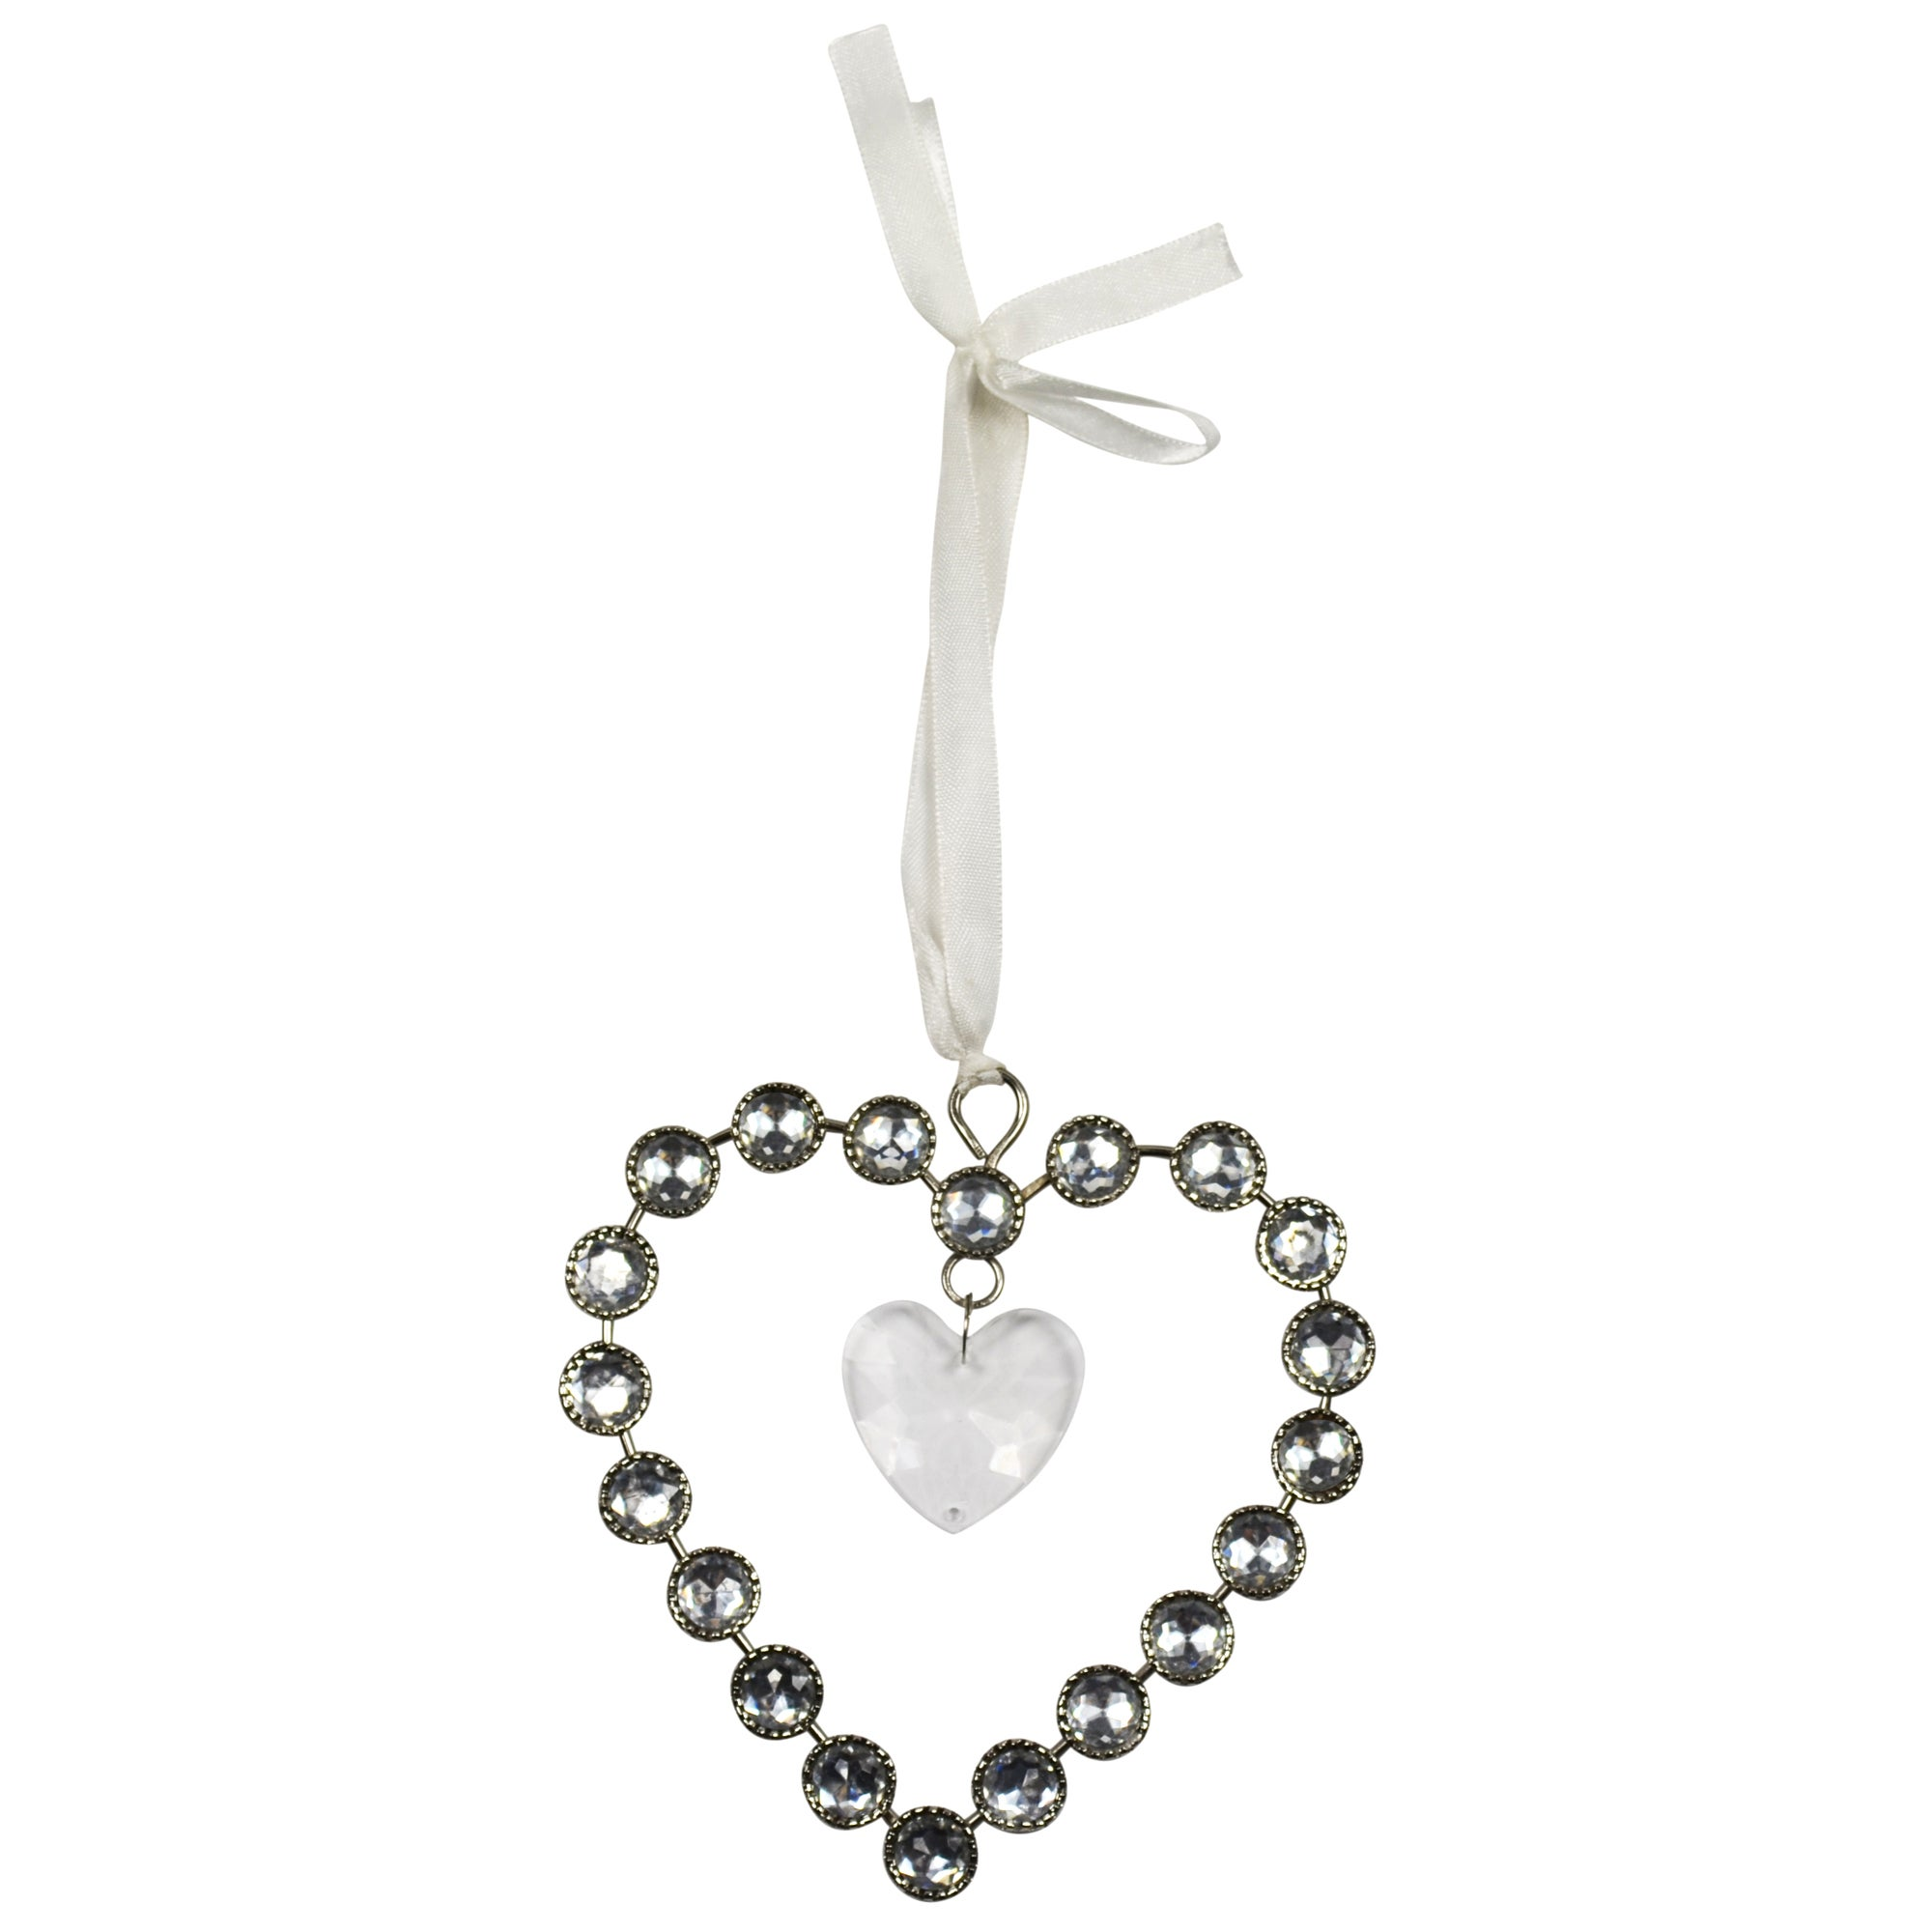 Sparkle Collection Small Hanging Jewel Heart